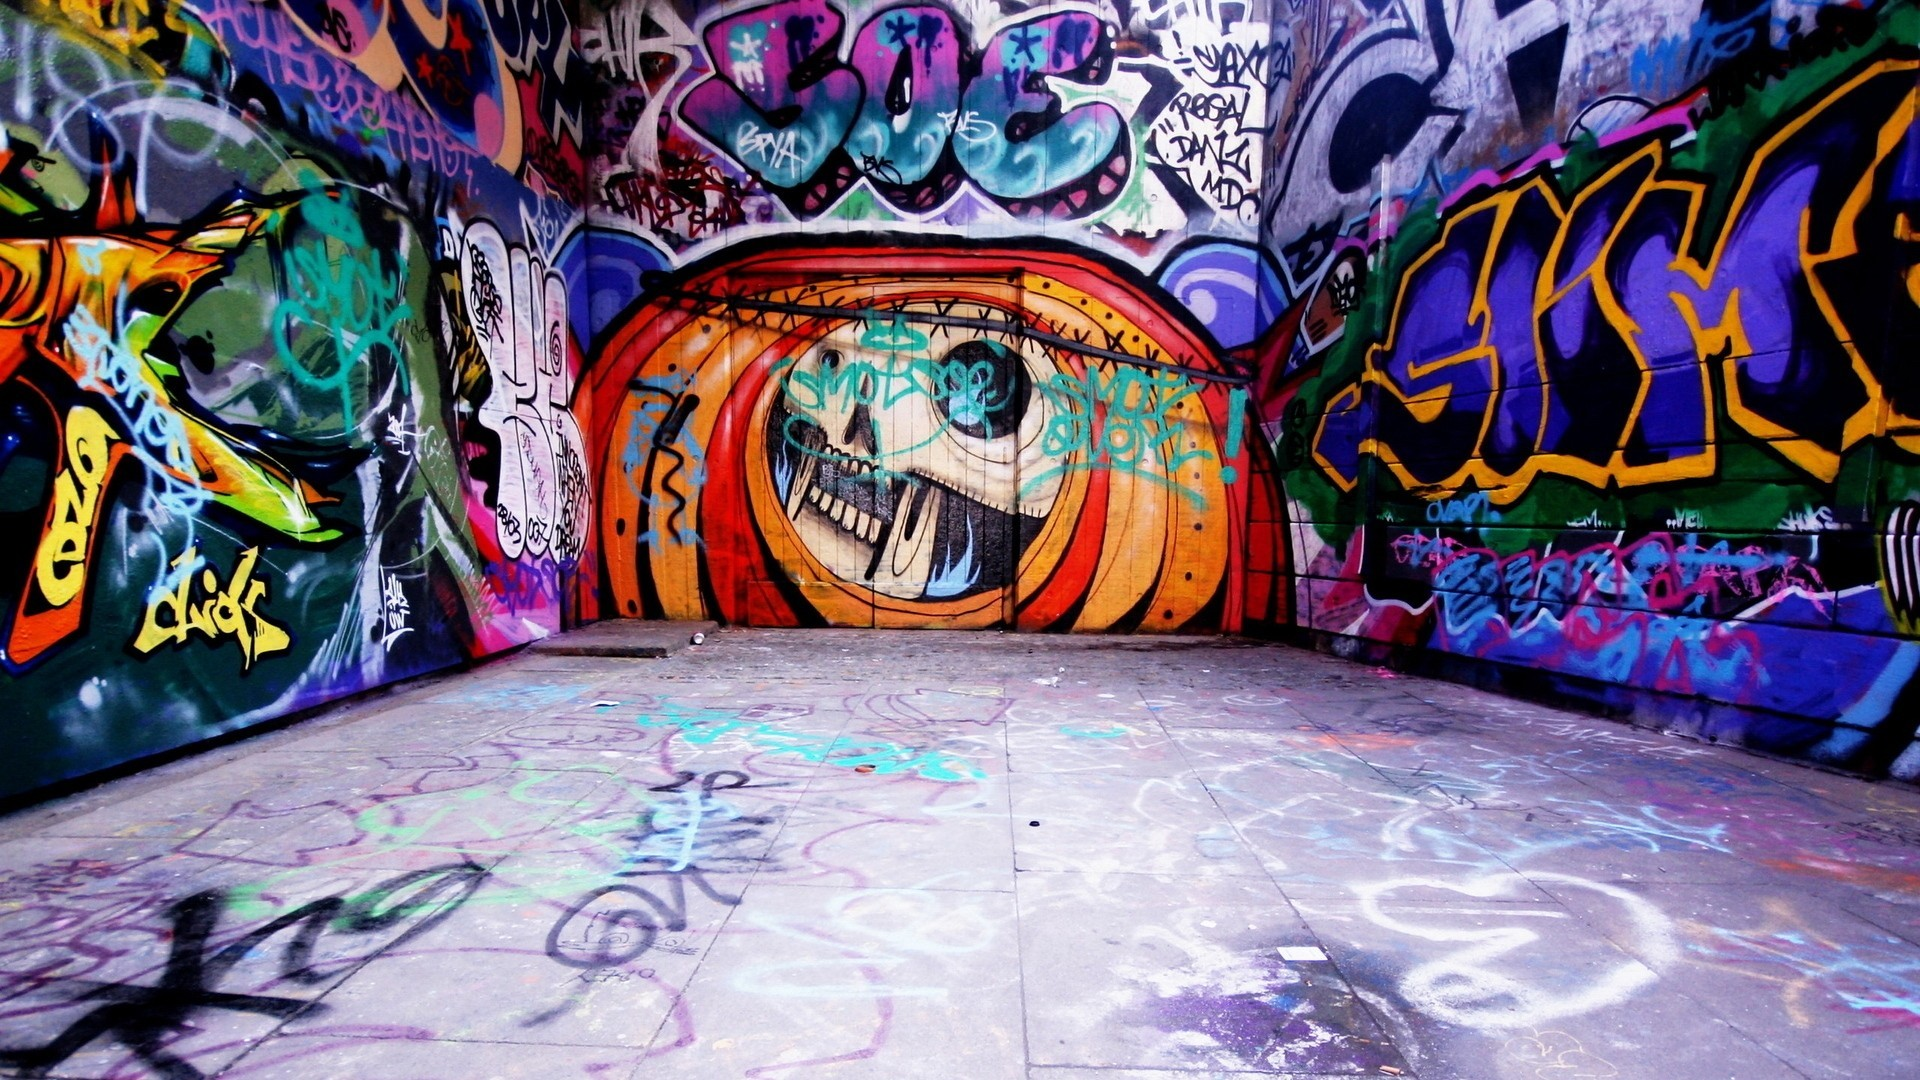 Graffiti wall art wallpaper 2829 pc en for Wall art wallpaper